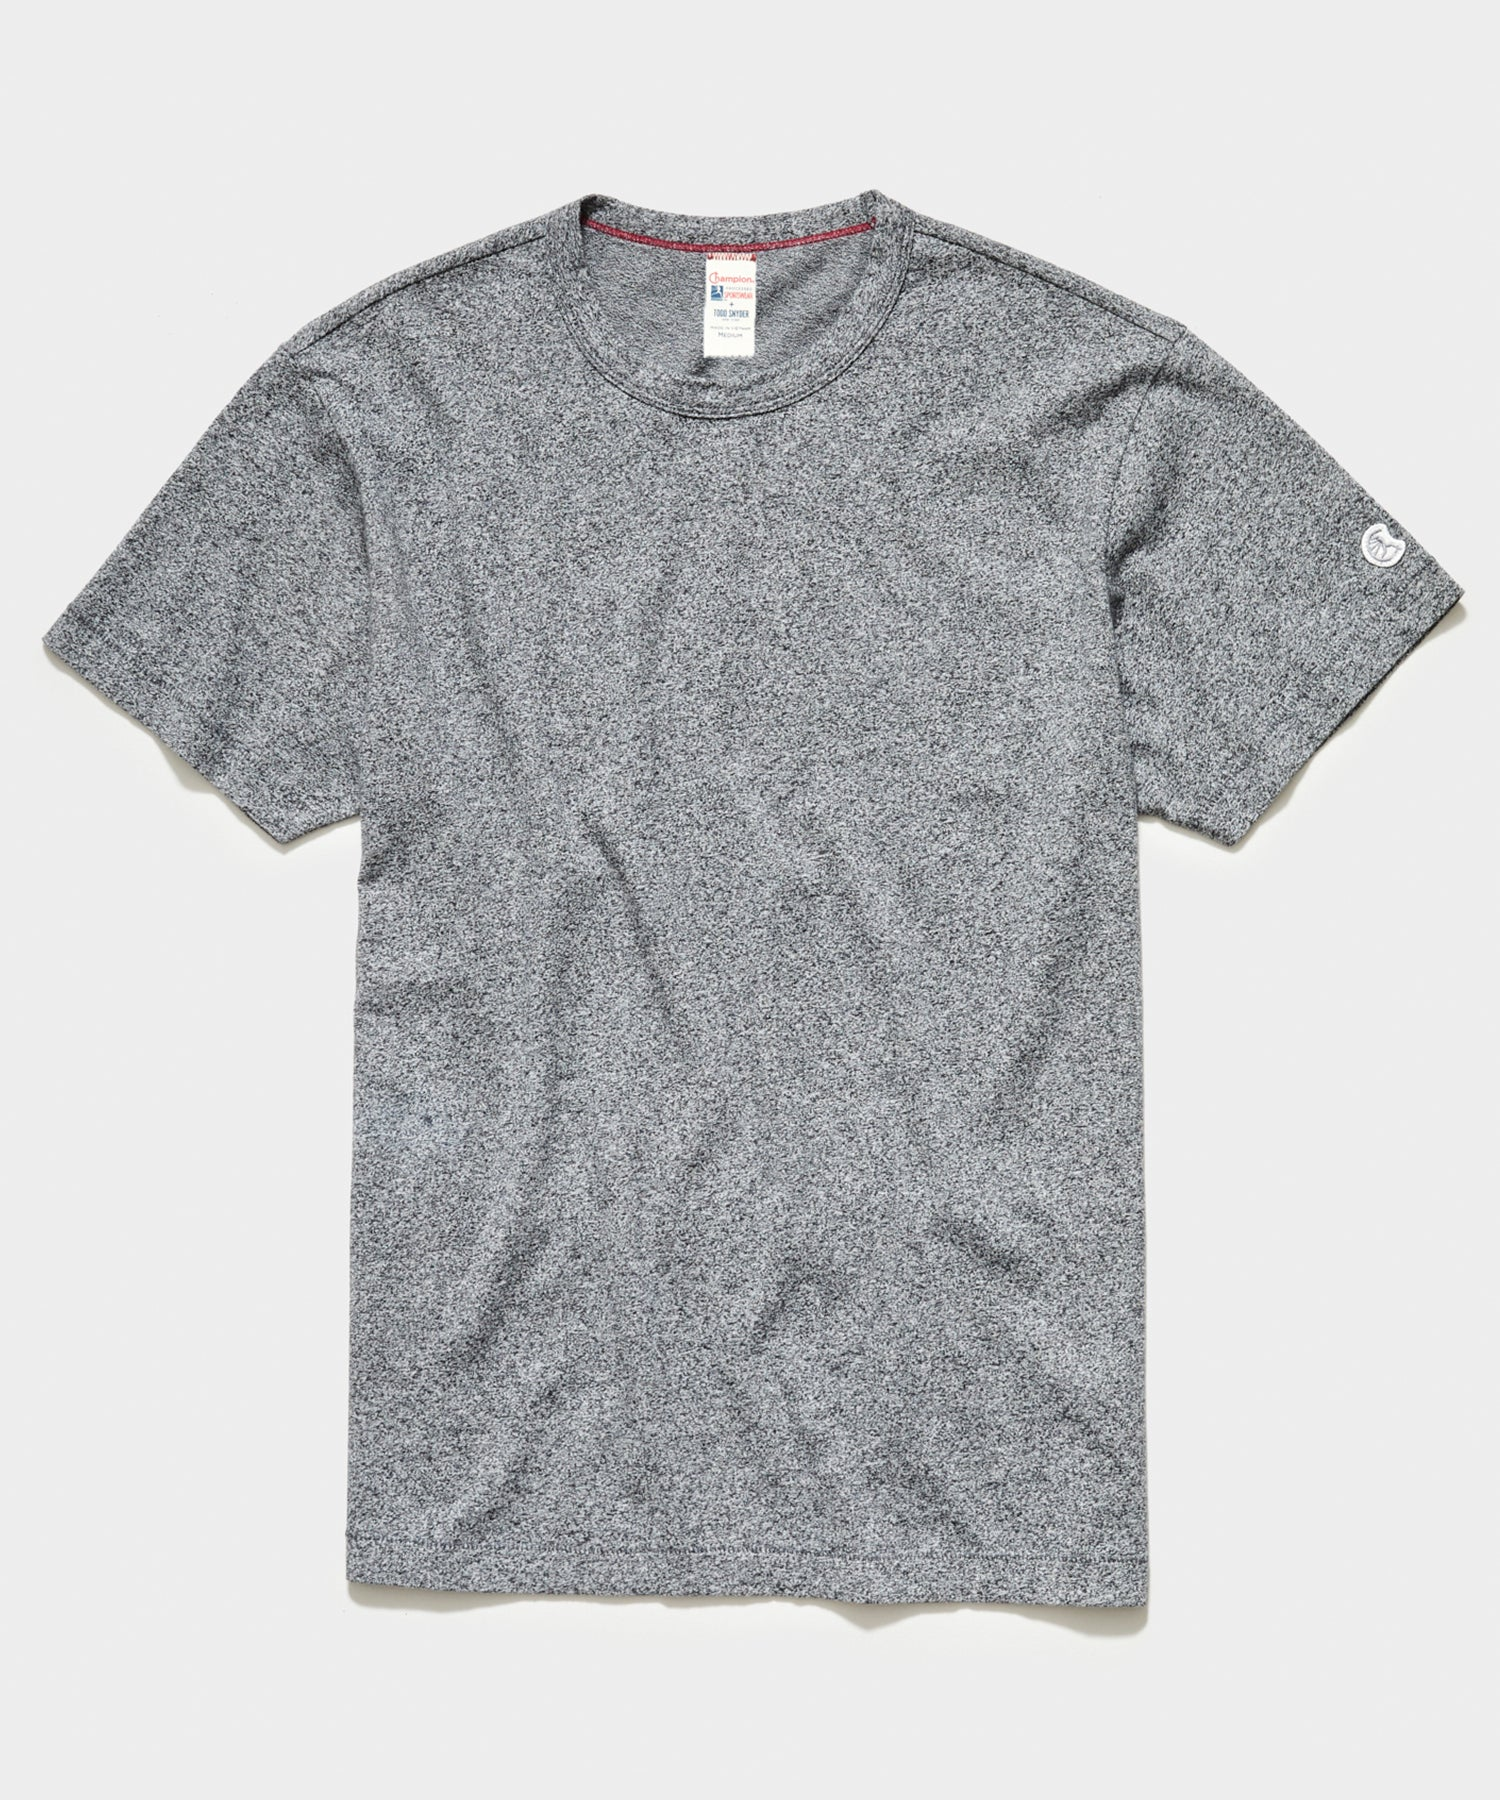 Champion Basic Jersey Tee in Salt and Pepper